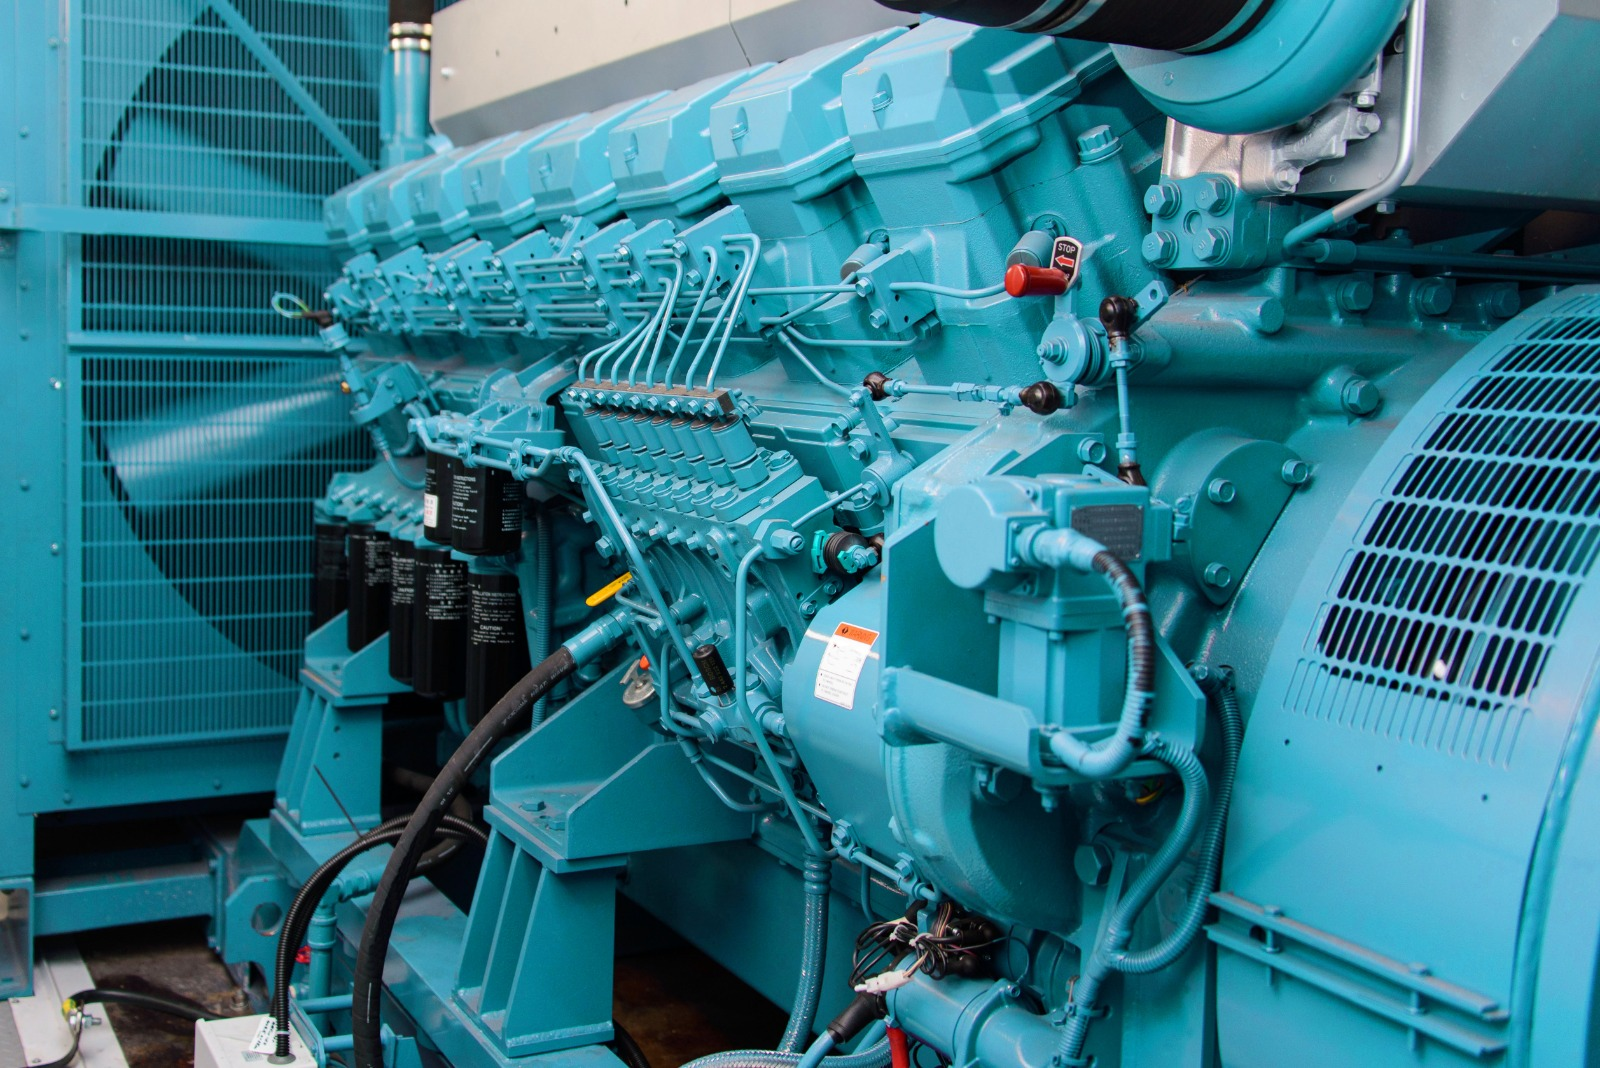 Motor condition monitoring is very important to prevent unplanned downtime.